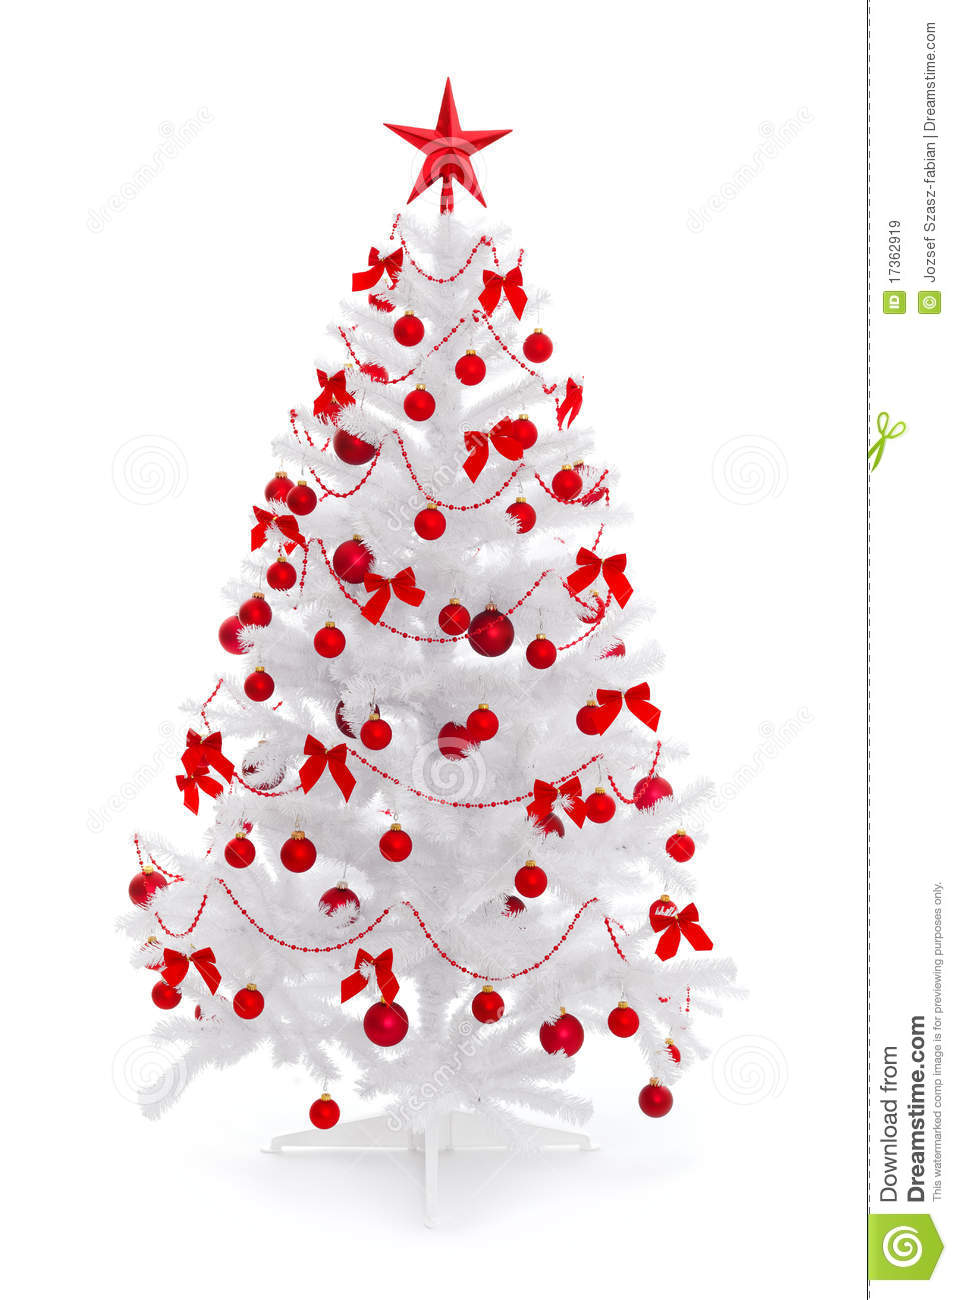 White Christmas Tree With Red Decoration Stock Image - Image of ...